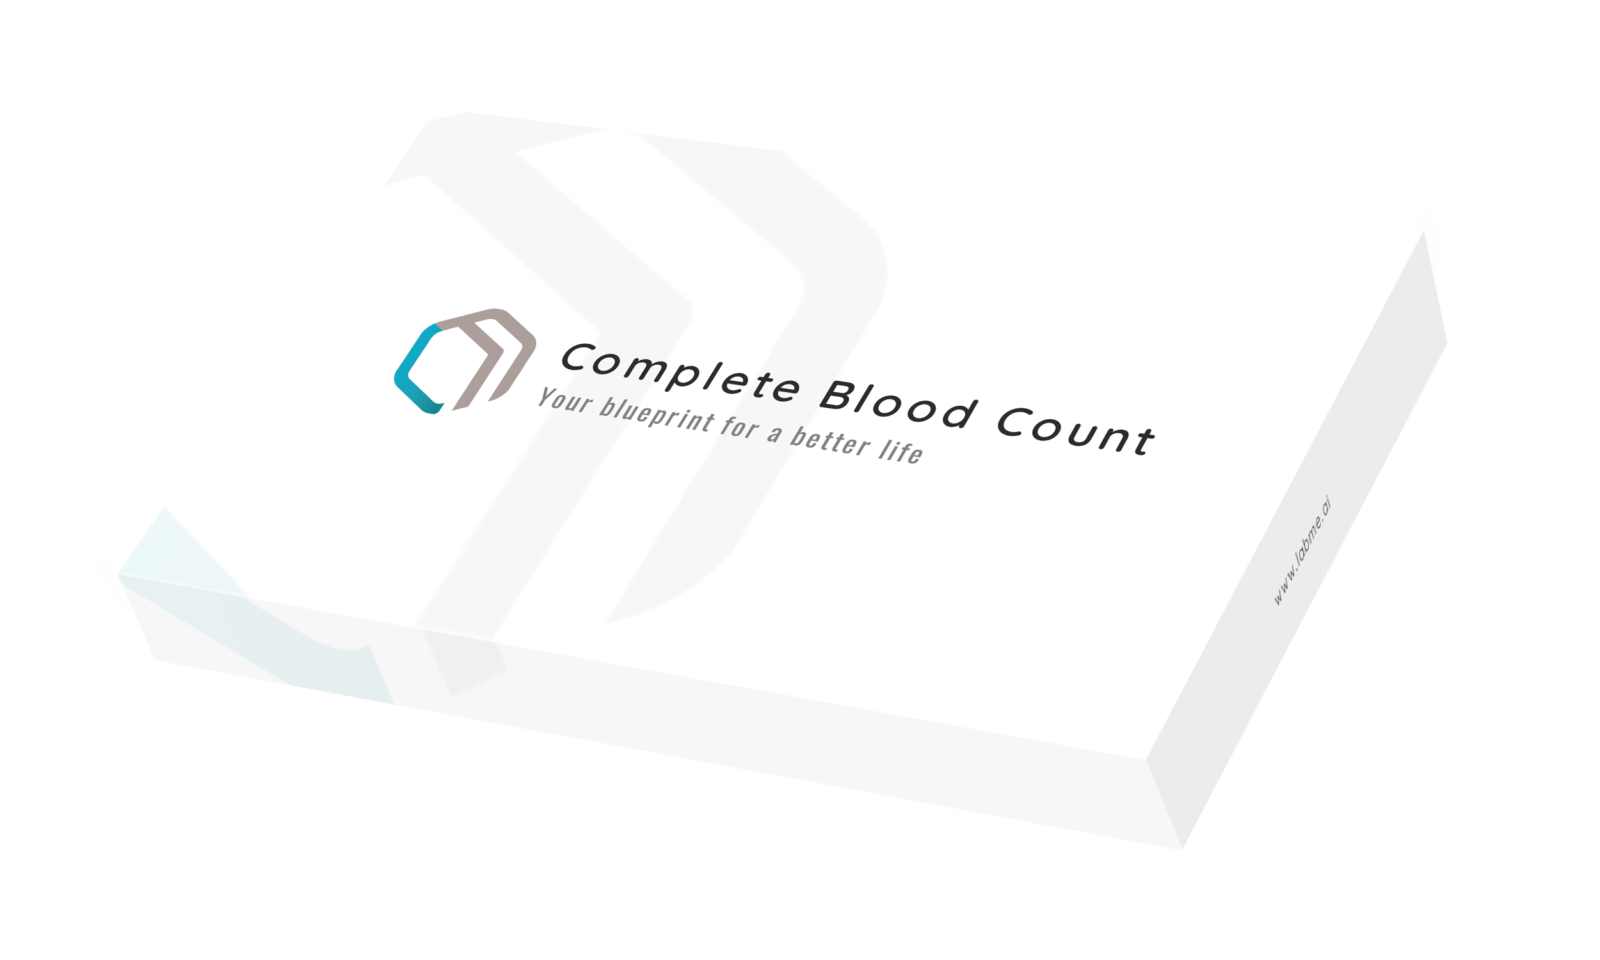 at-home complete blood count